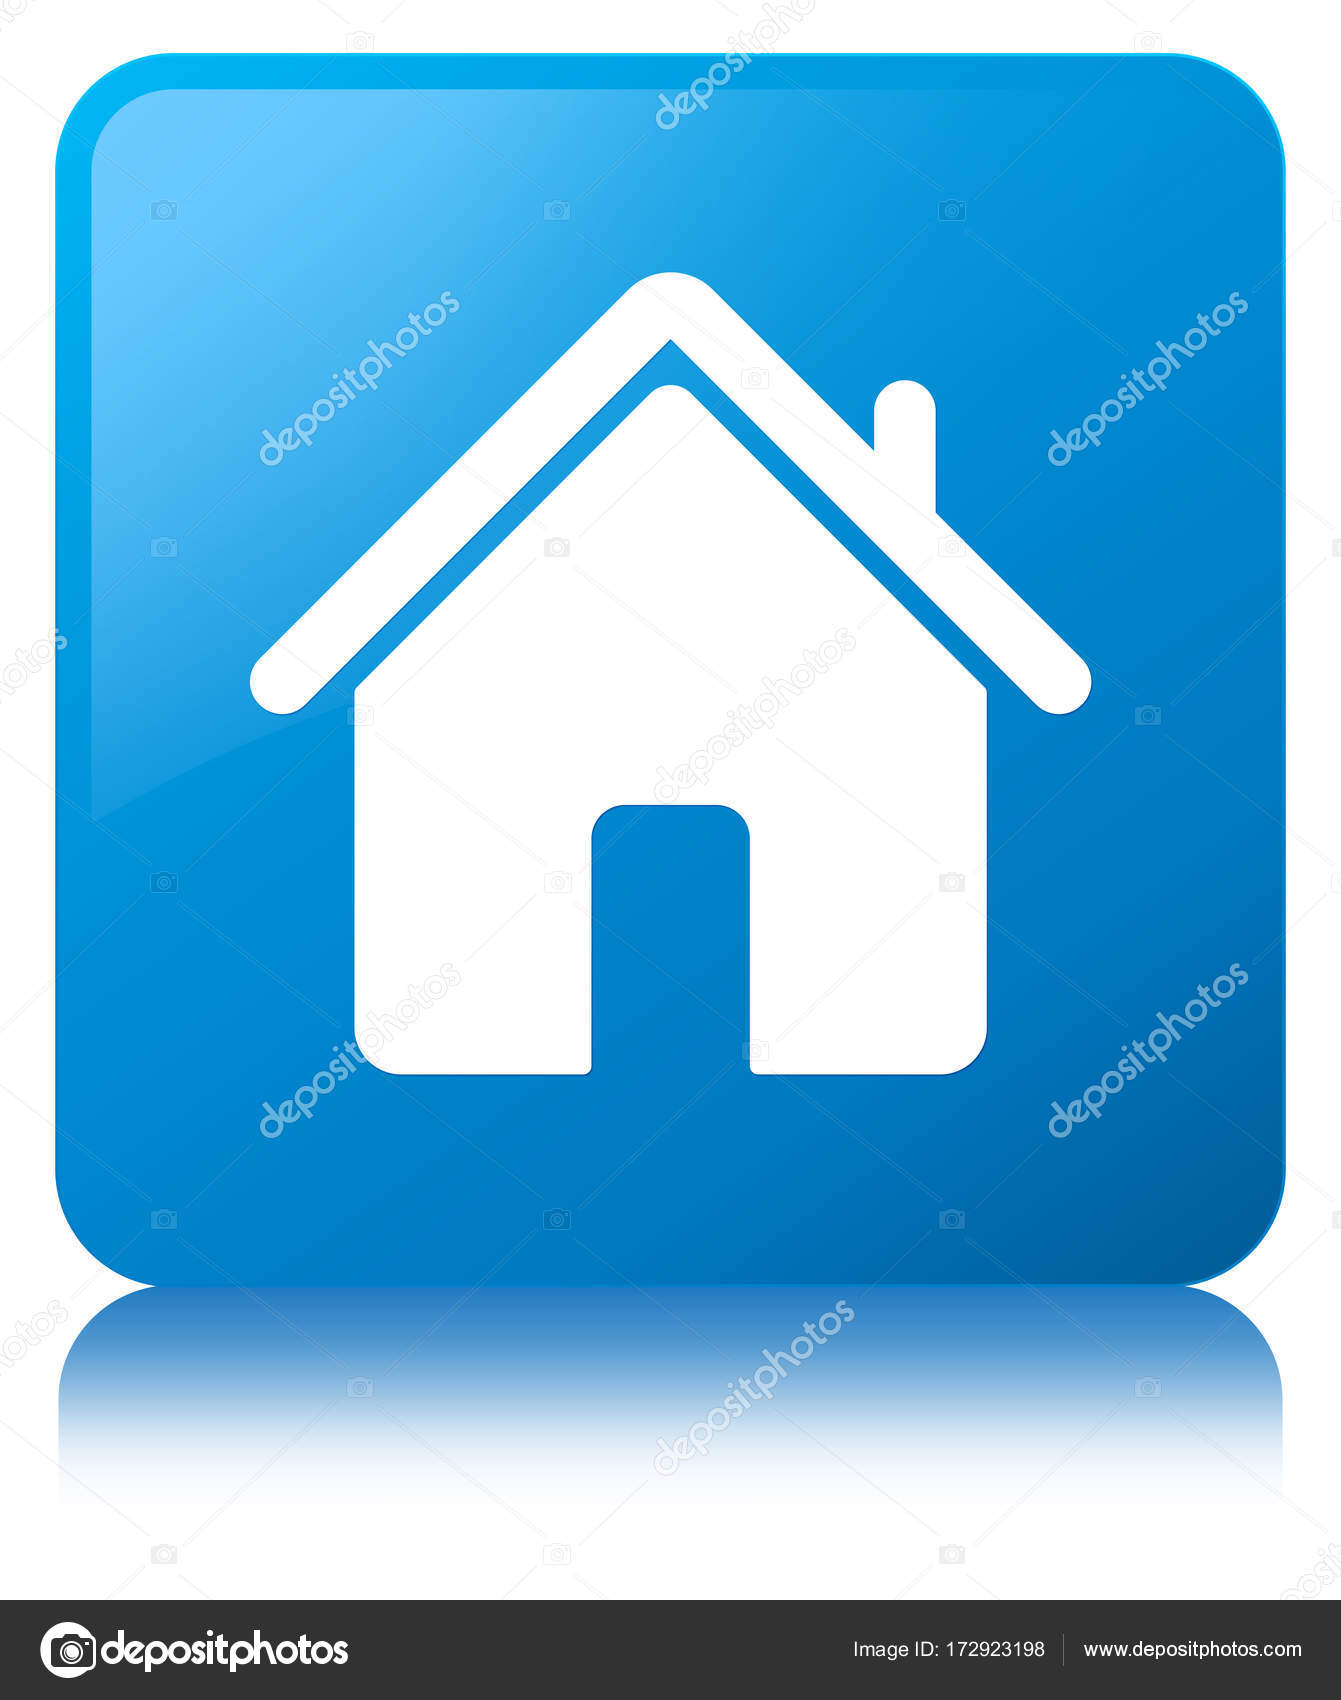 Blue Home Icon : Square, Button, Stock, Photo,, Image, FR_Design, #172923198